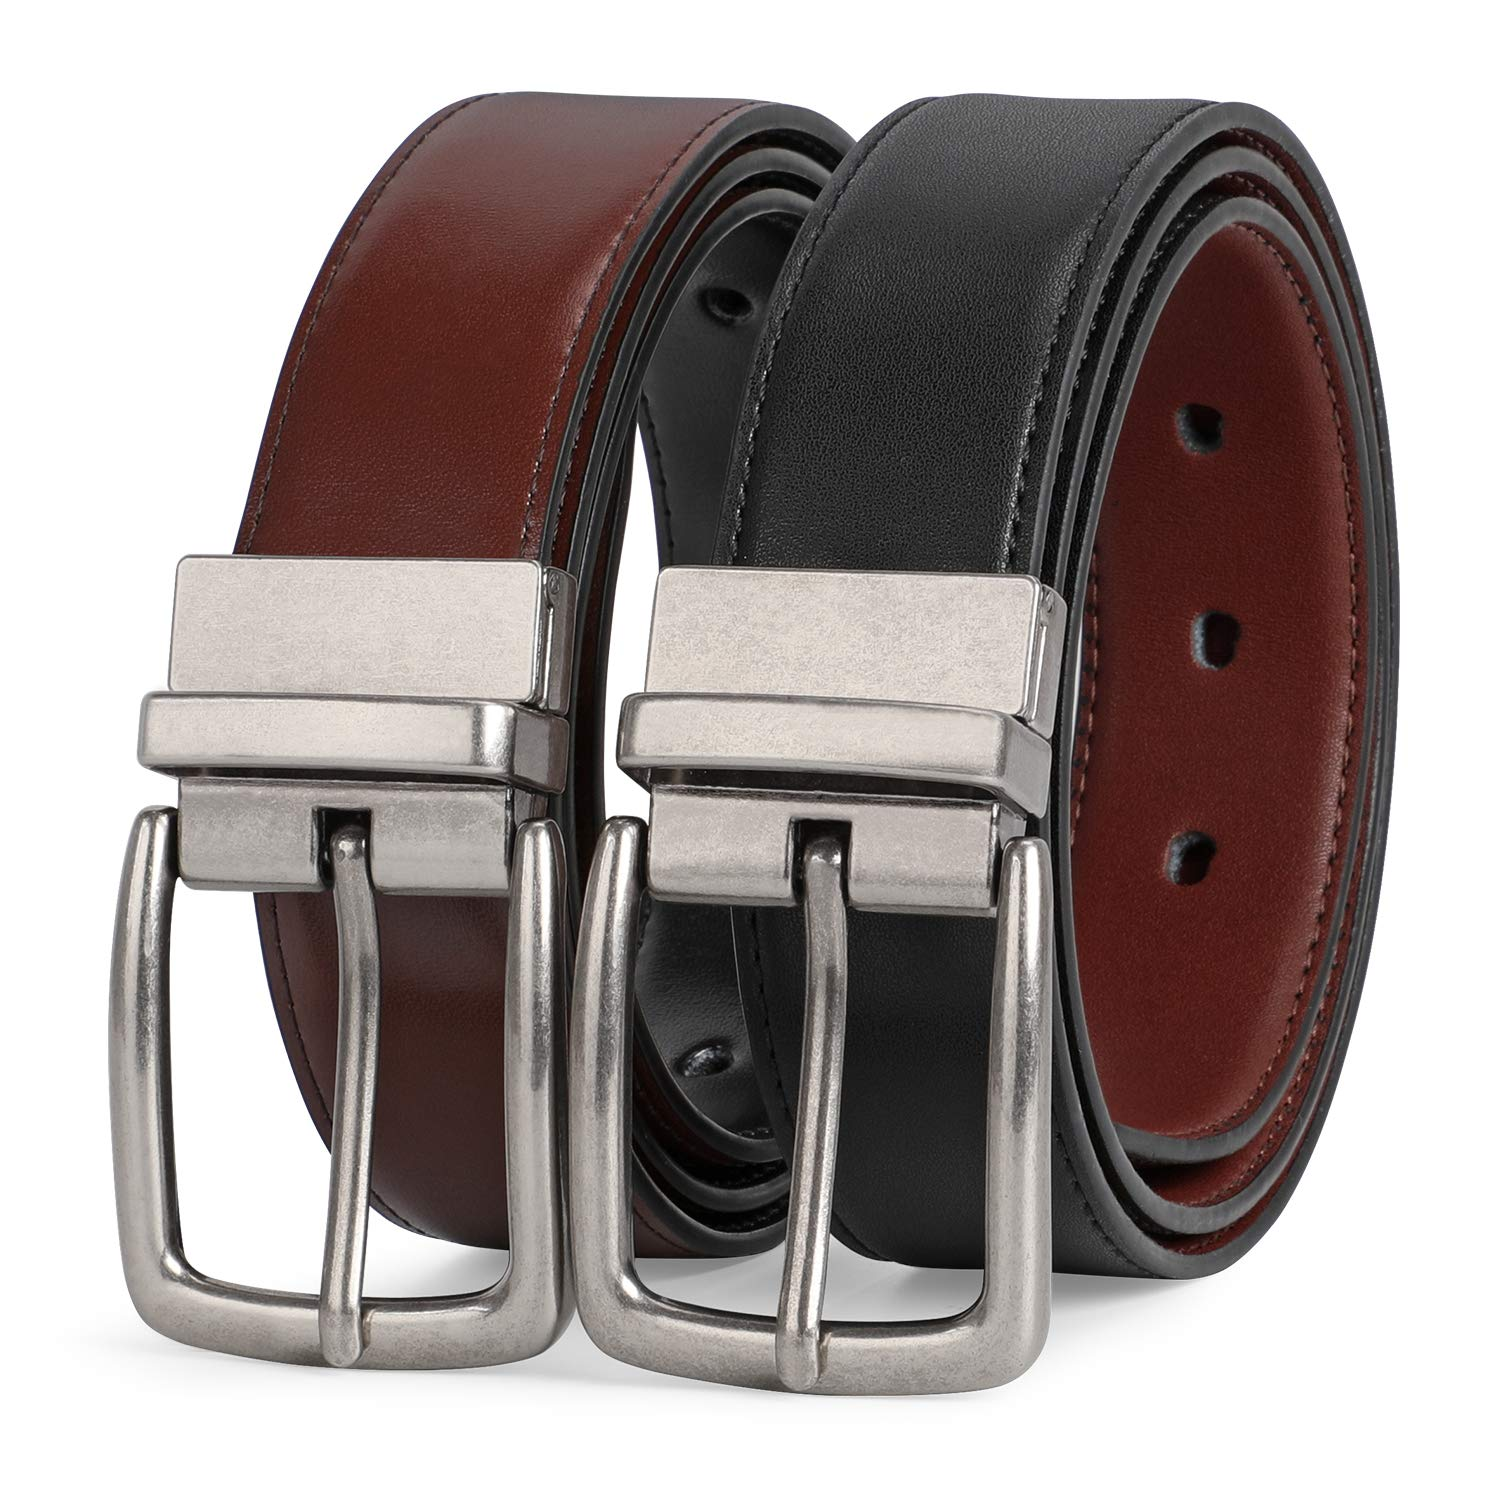 Good quality belt w/reversible buckle